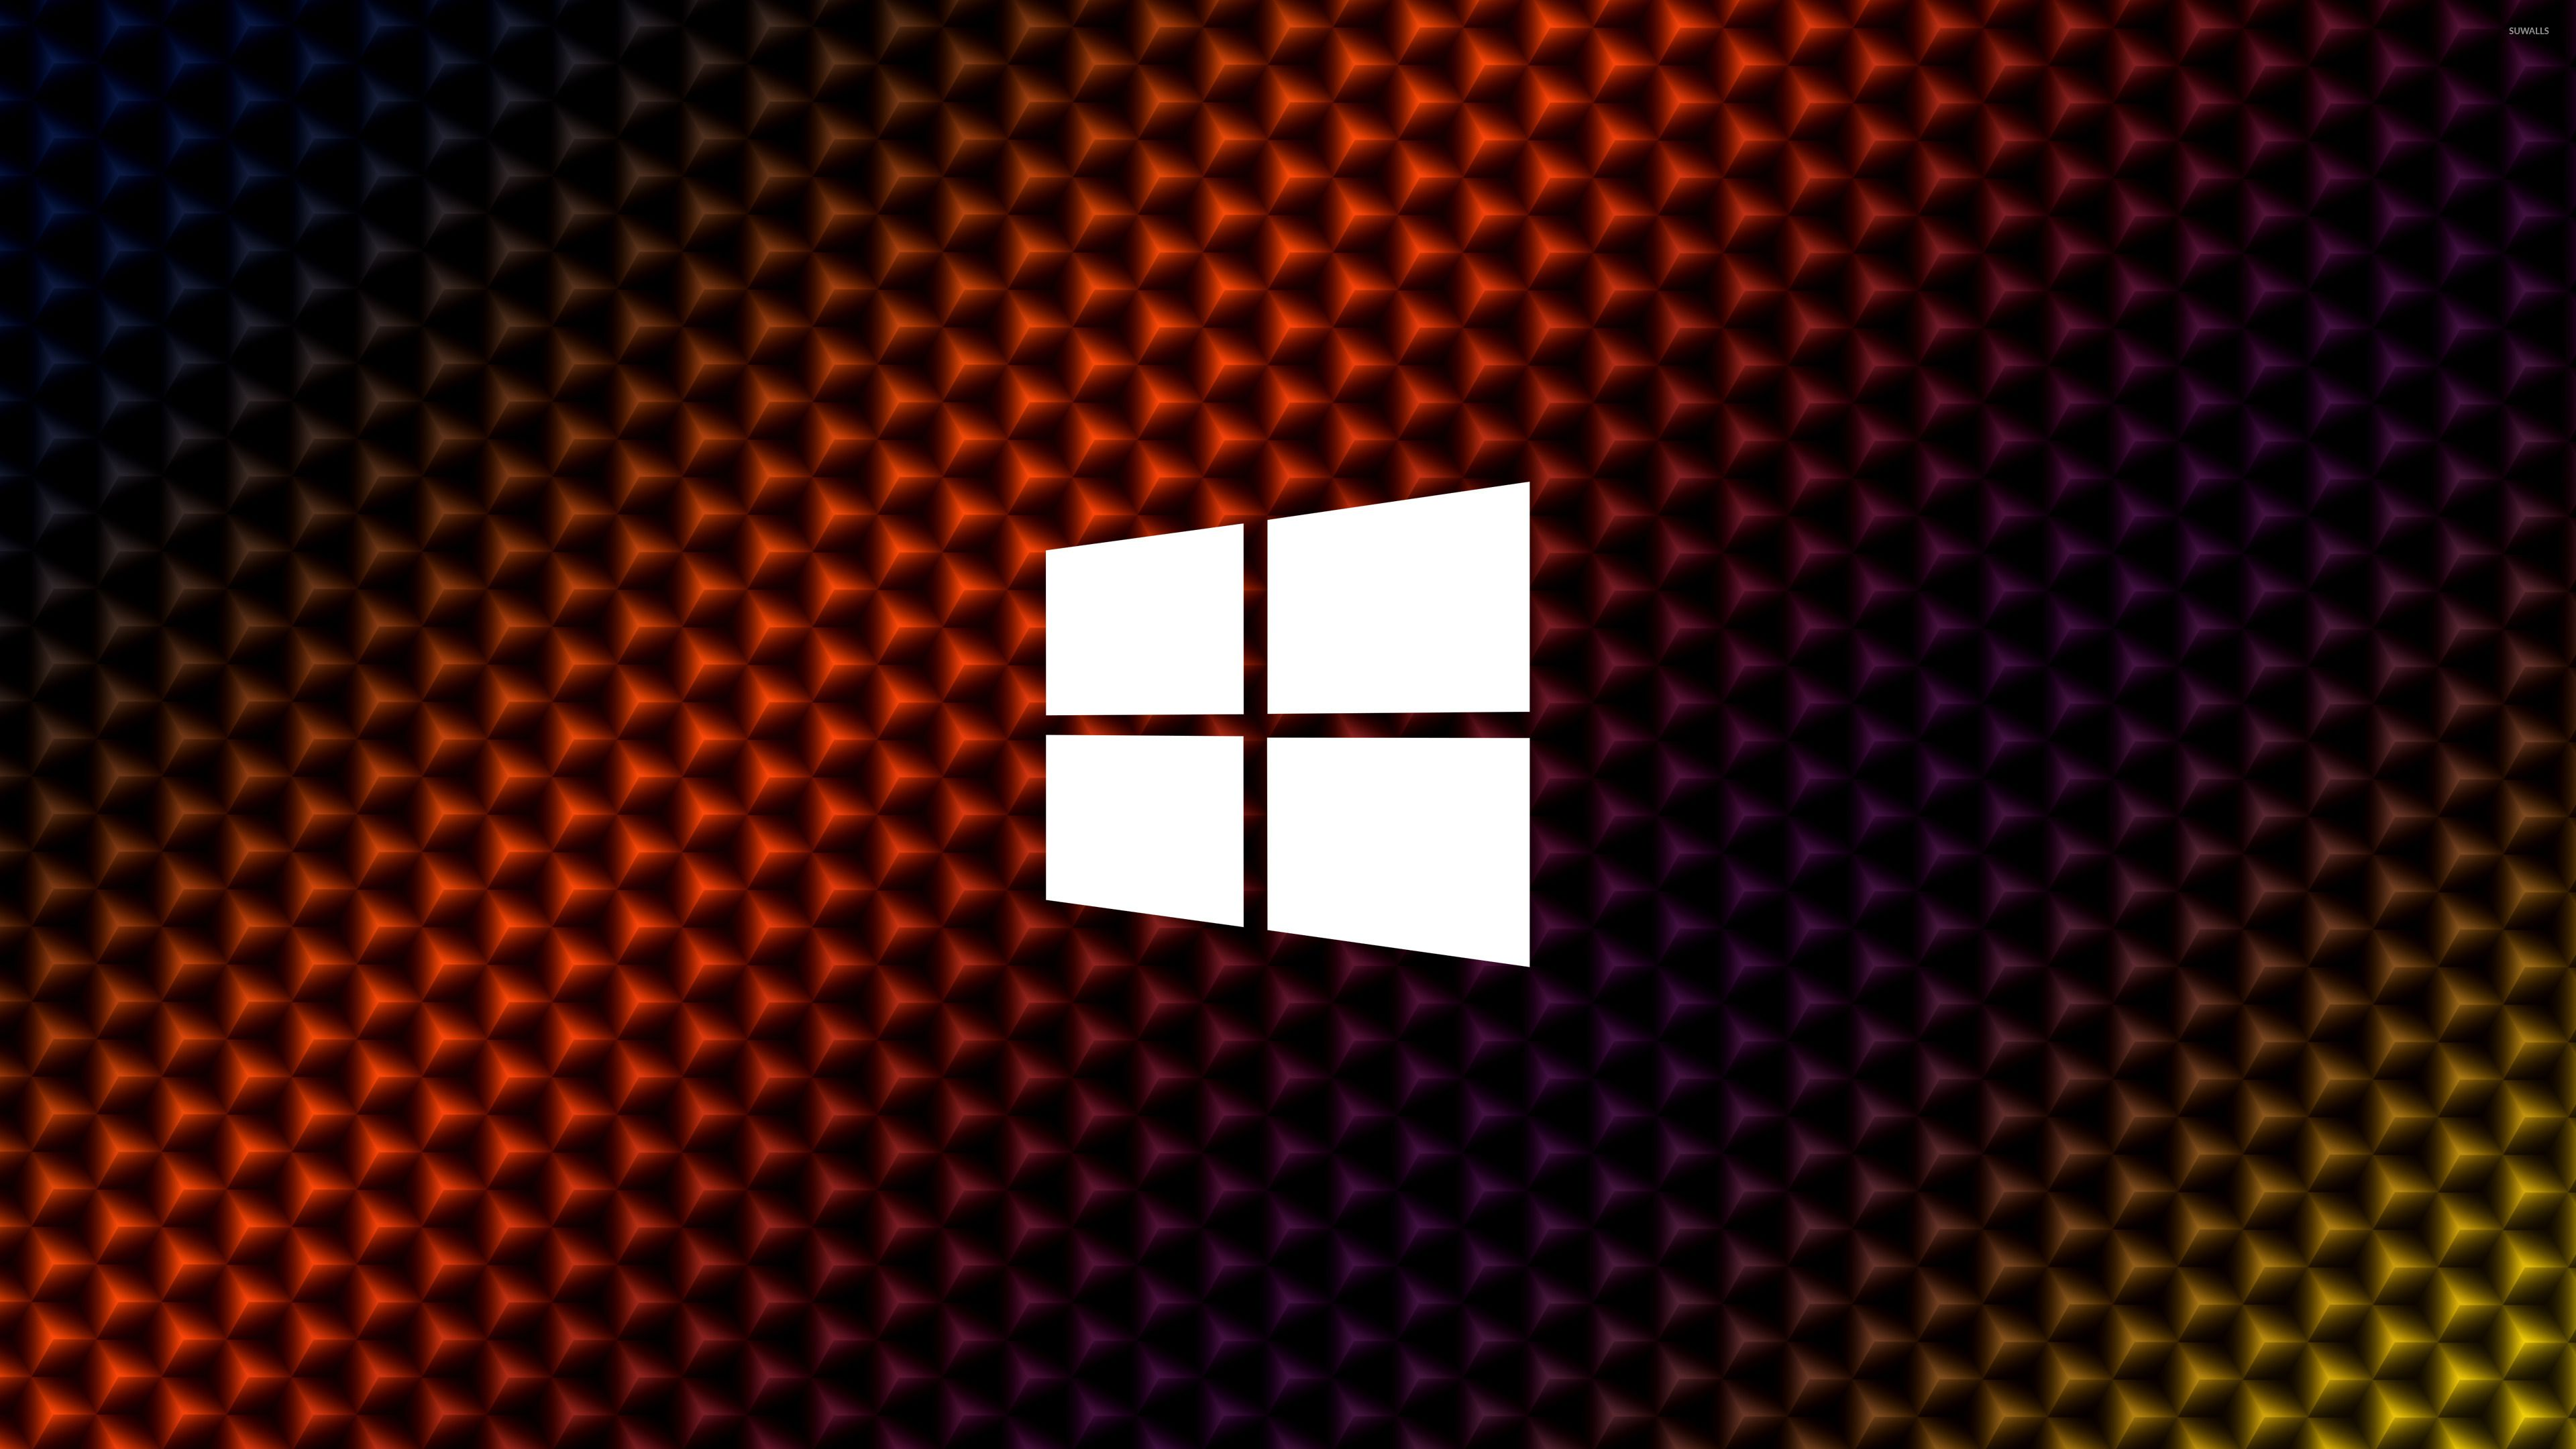 3840x2160 Windows 10 simple white logo on colorful cubes wallpaper ...